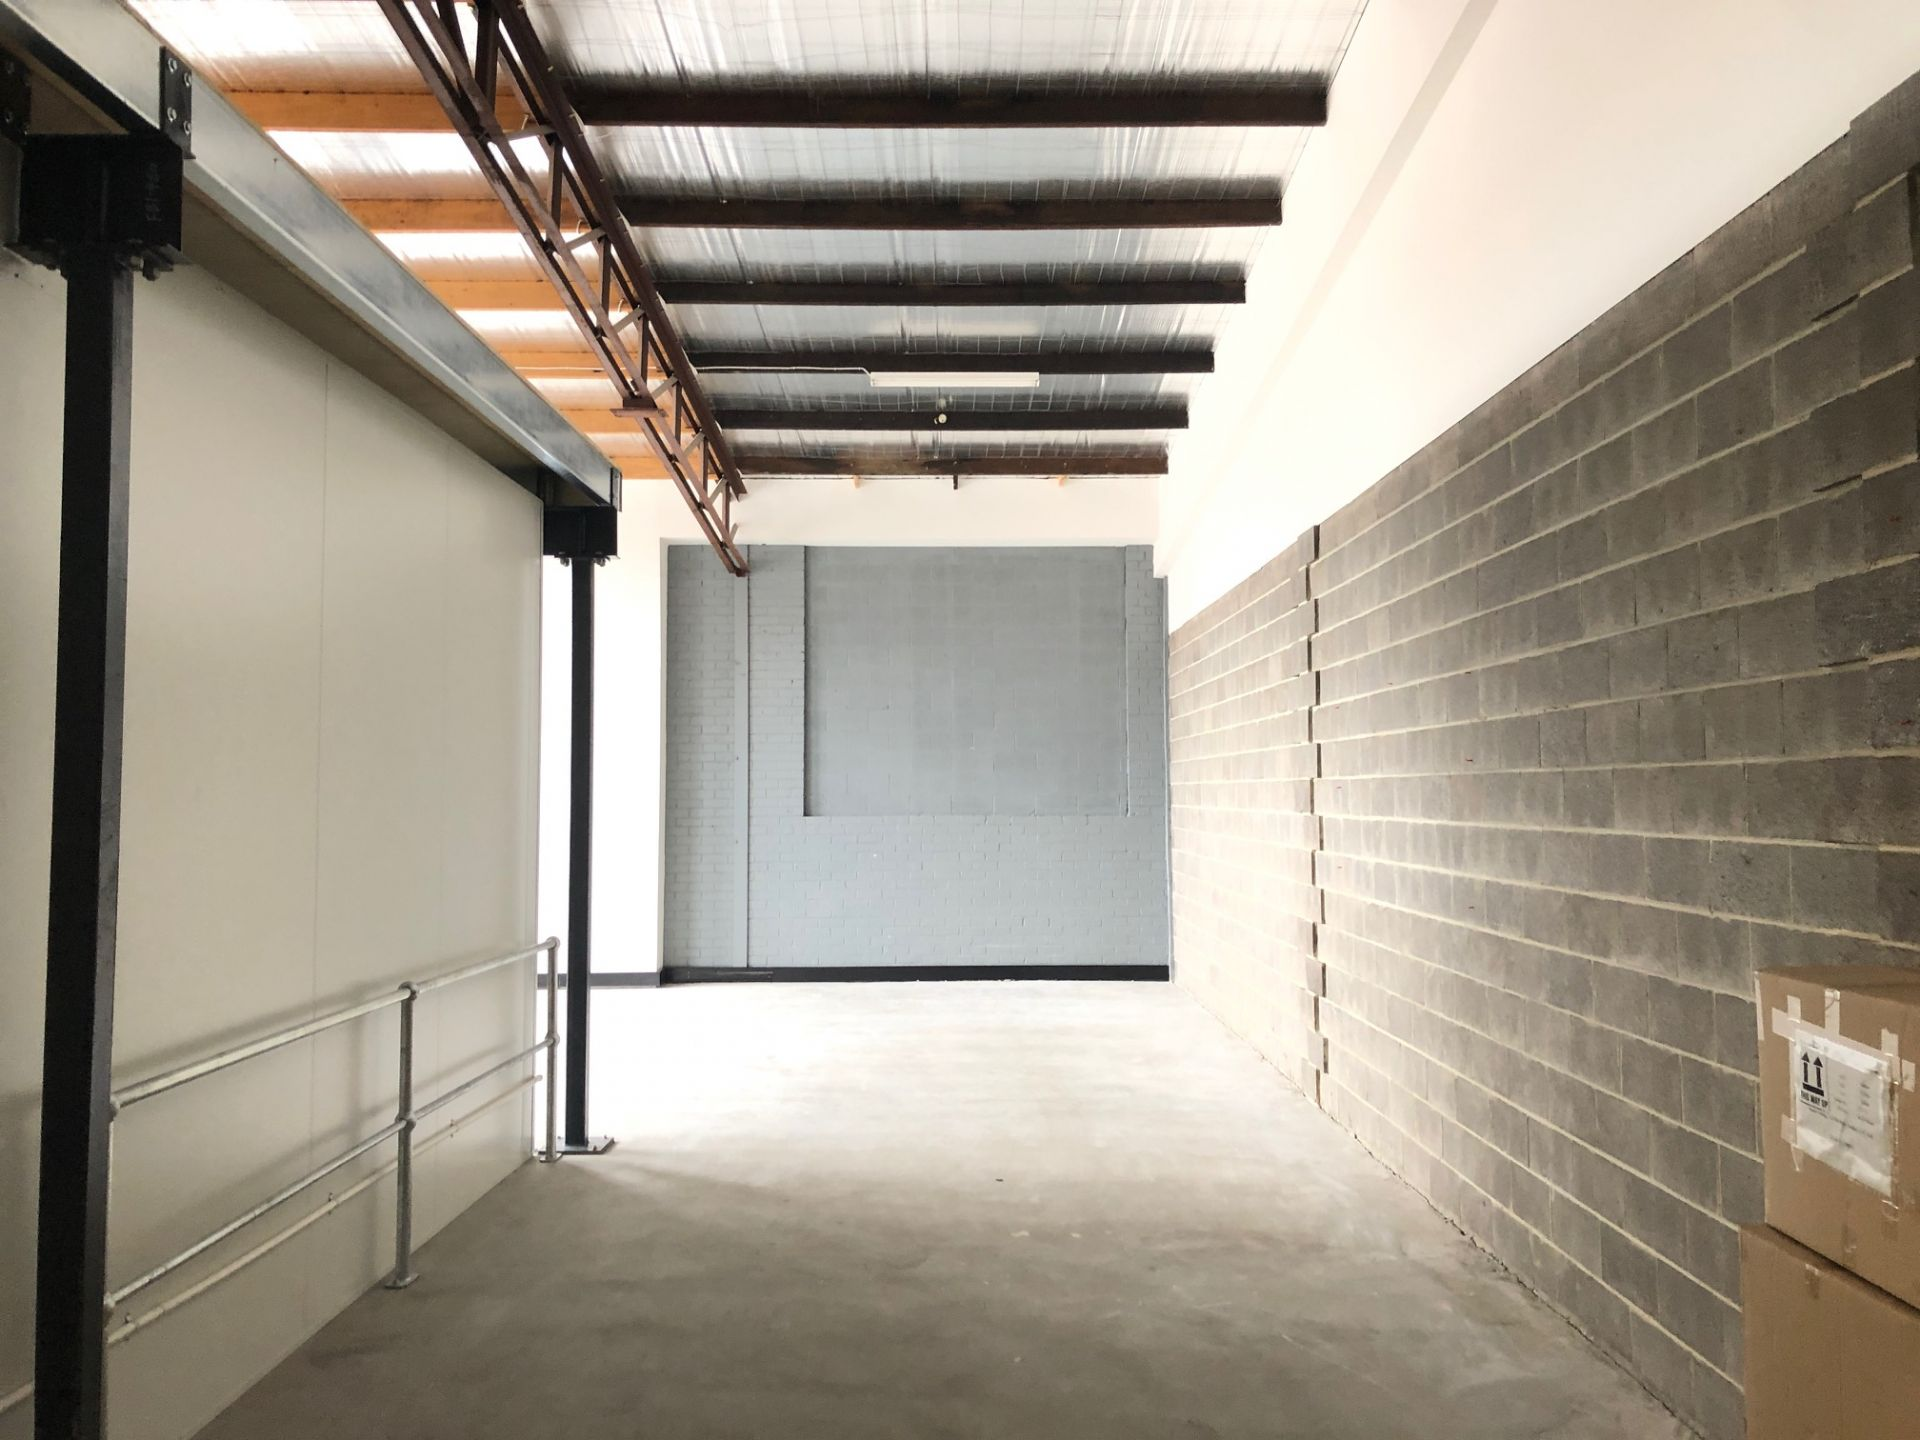 100M2* OFFICE / WAREHOUSE WITH ADDITIONAL 38M2* MEZZANINE STORAGE